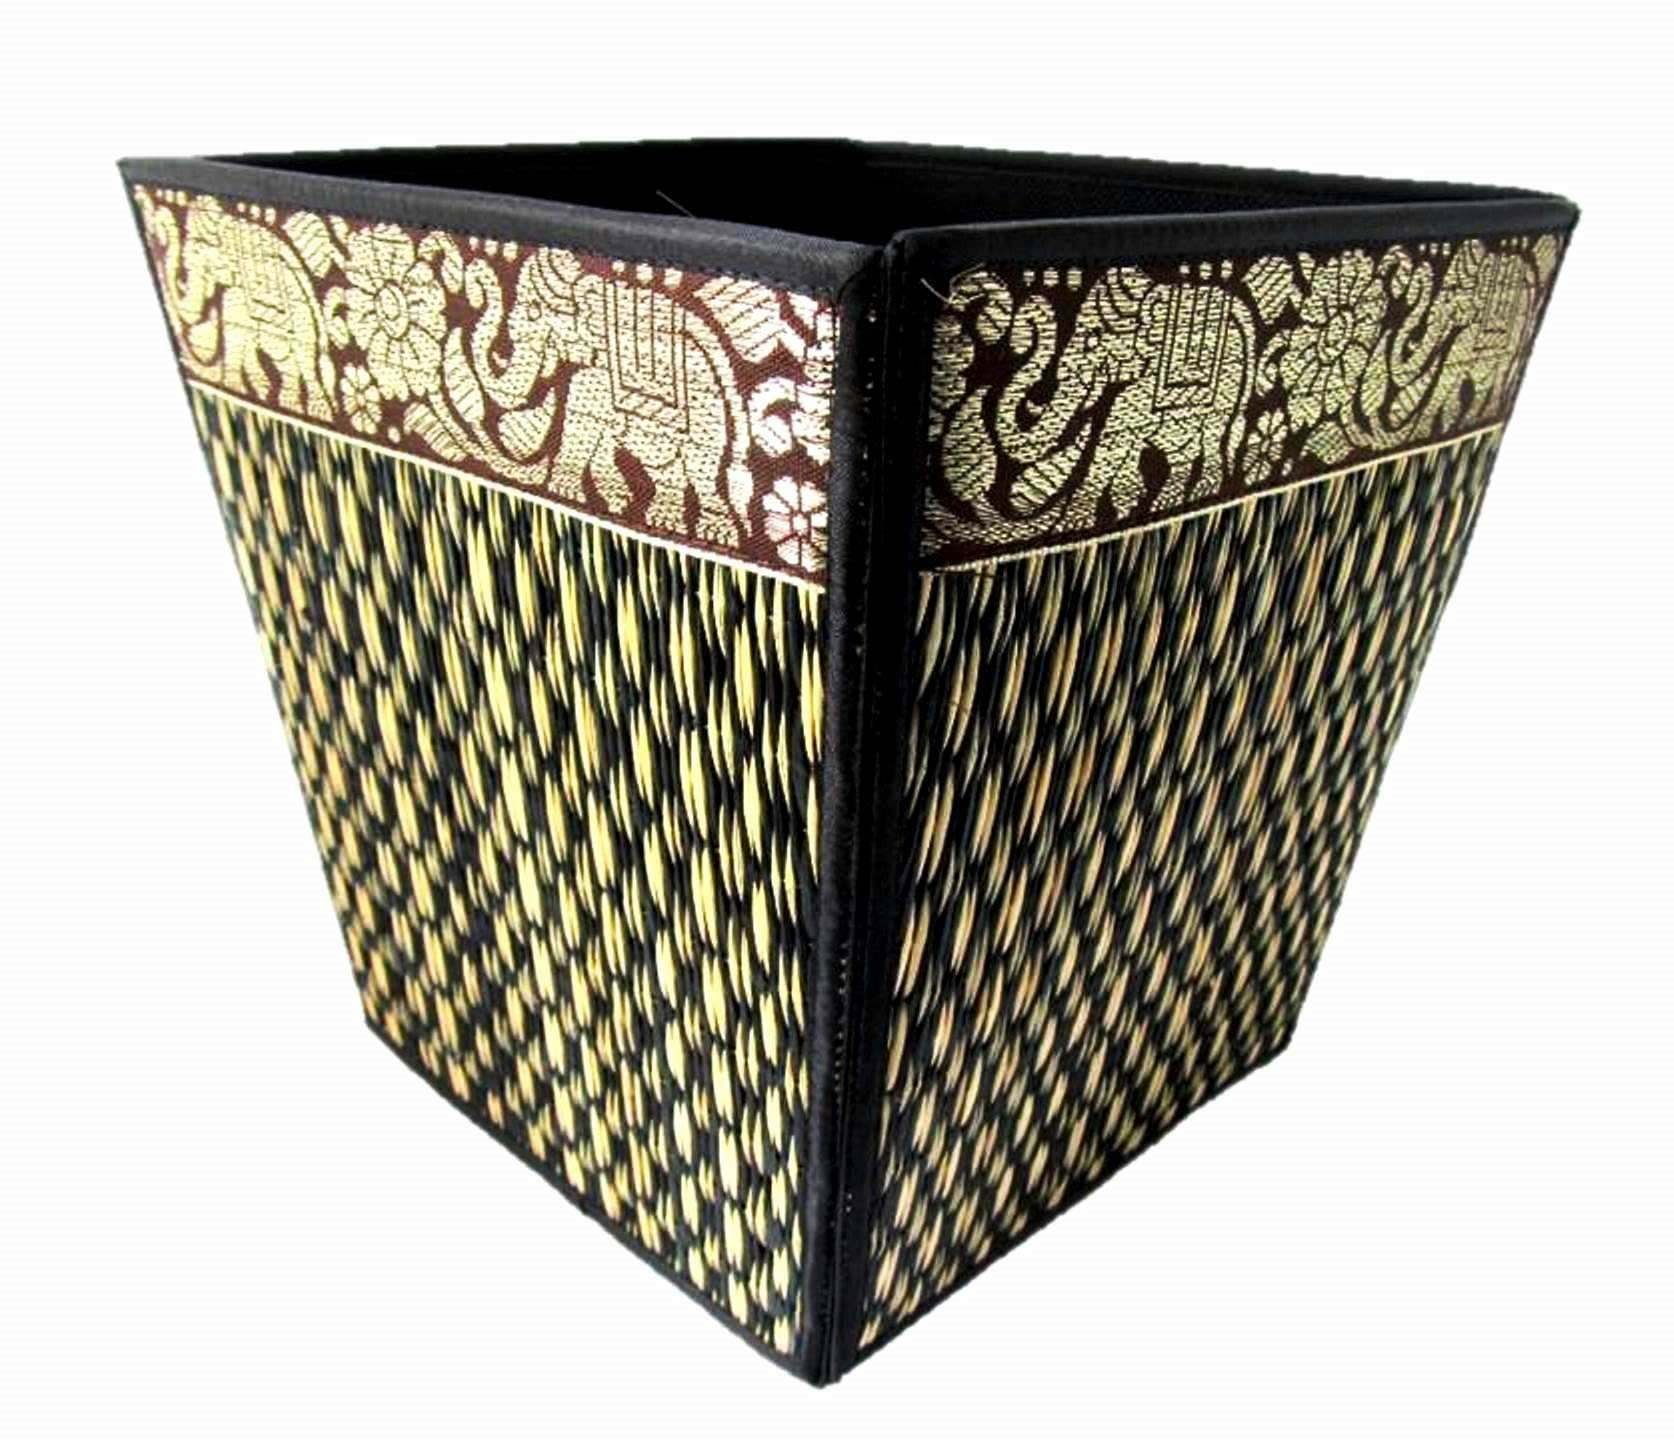 Decorative Waste Baskets for Bedroom Bathroom Office Elephant Desk Accessories 8 Inch (Black) by Blue Orchid